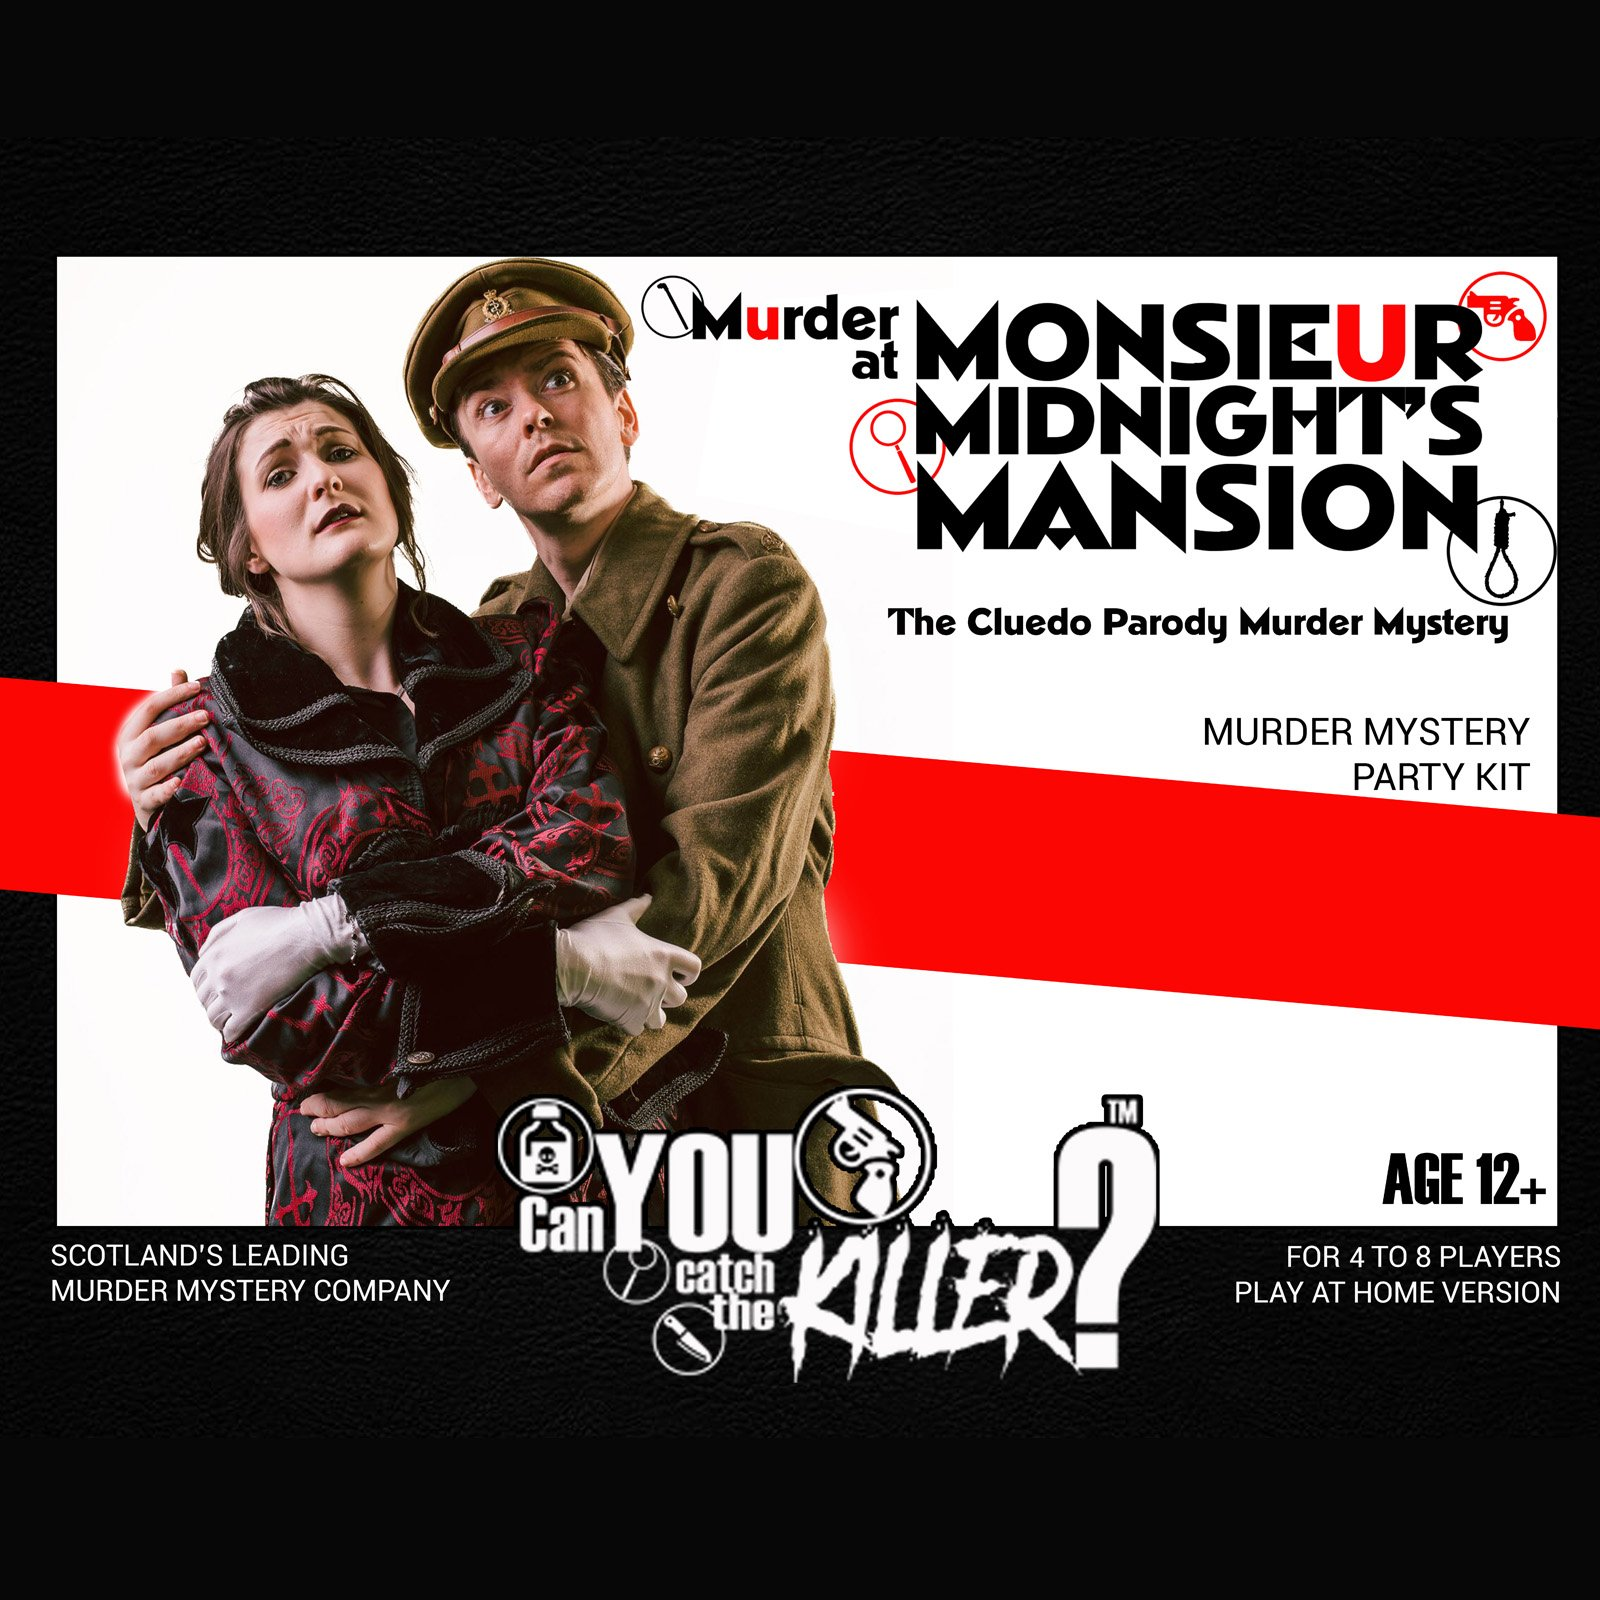 Murder at Monsieur Midnight's Manor Downloadable Party Kit